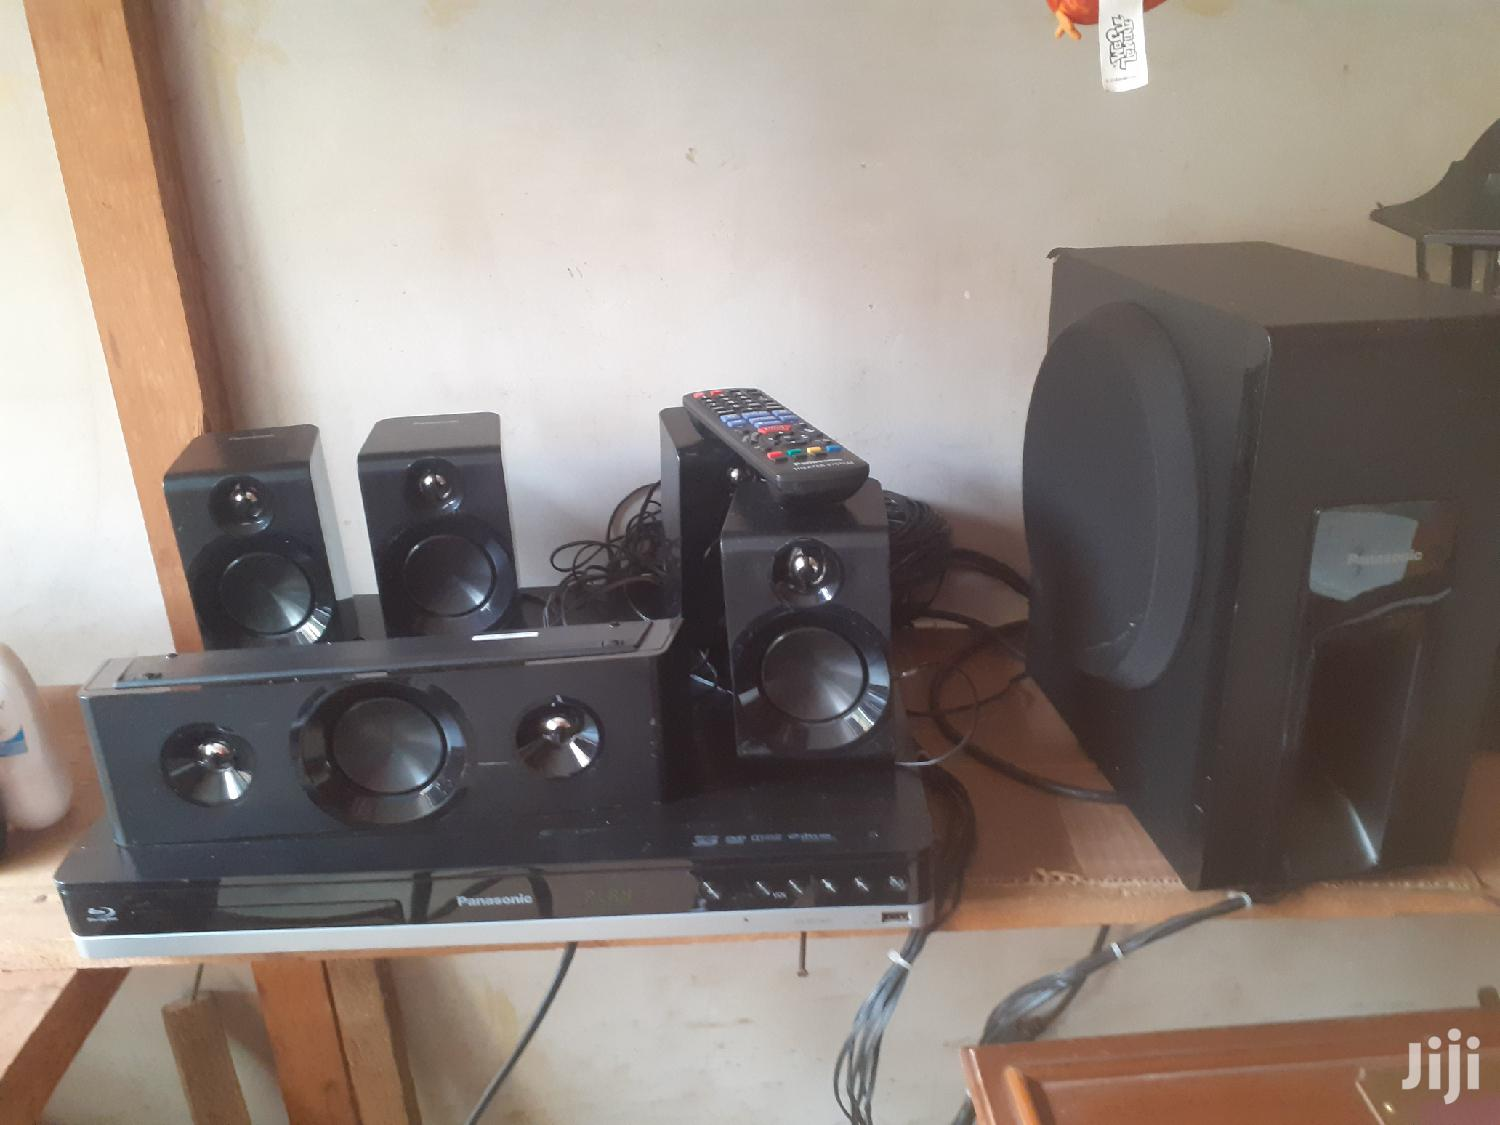 Archive: Panasonic Blu Ray 3D Home Theater With Netflix (Negotiable )